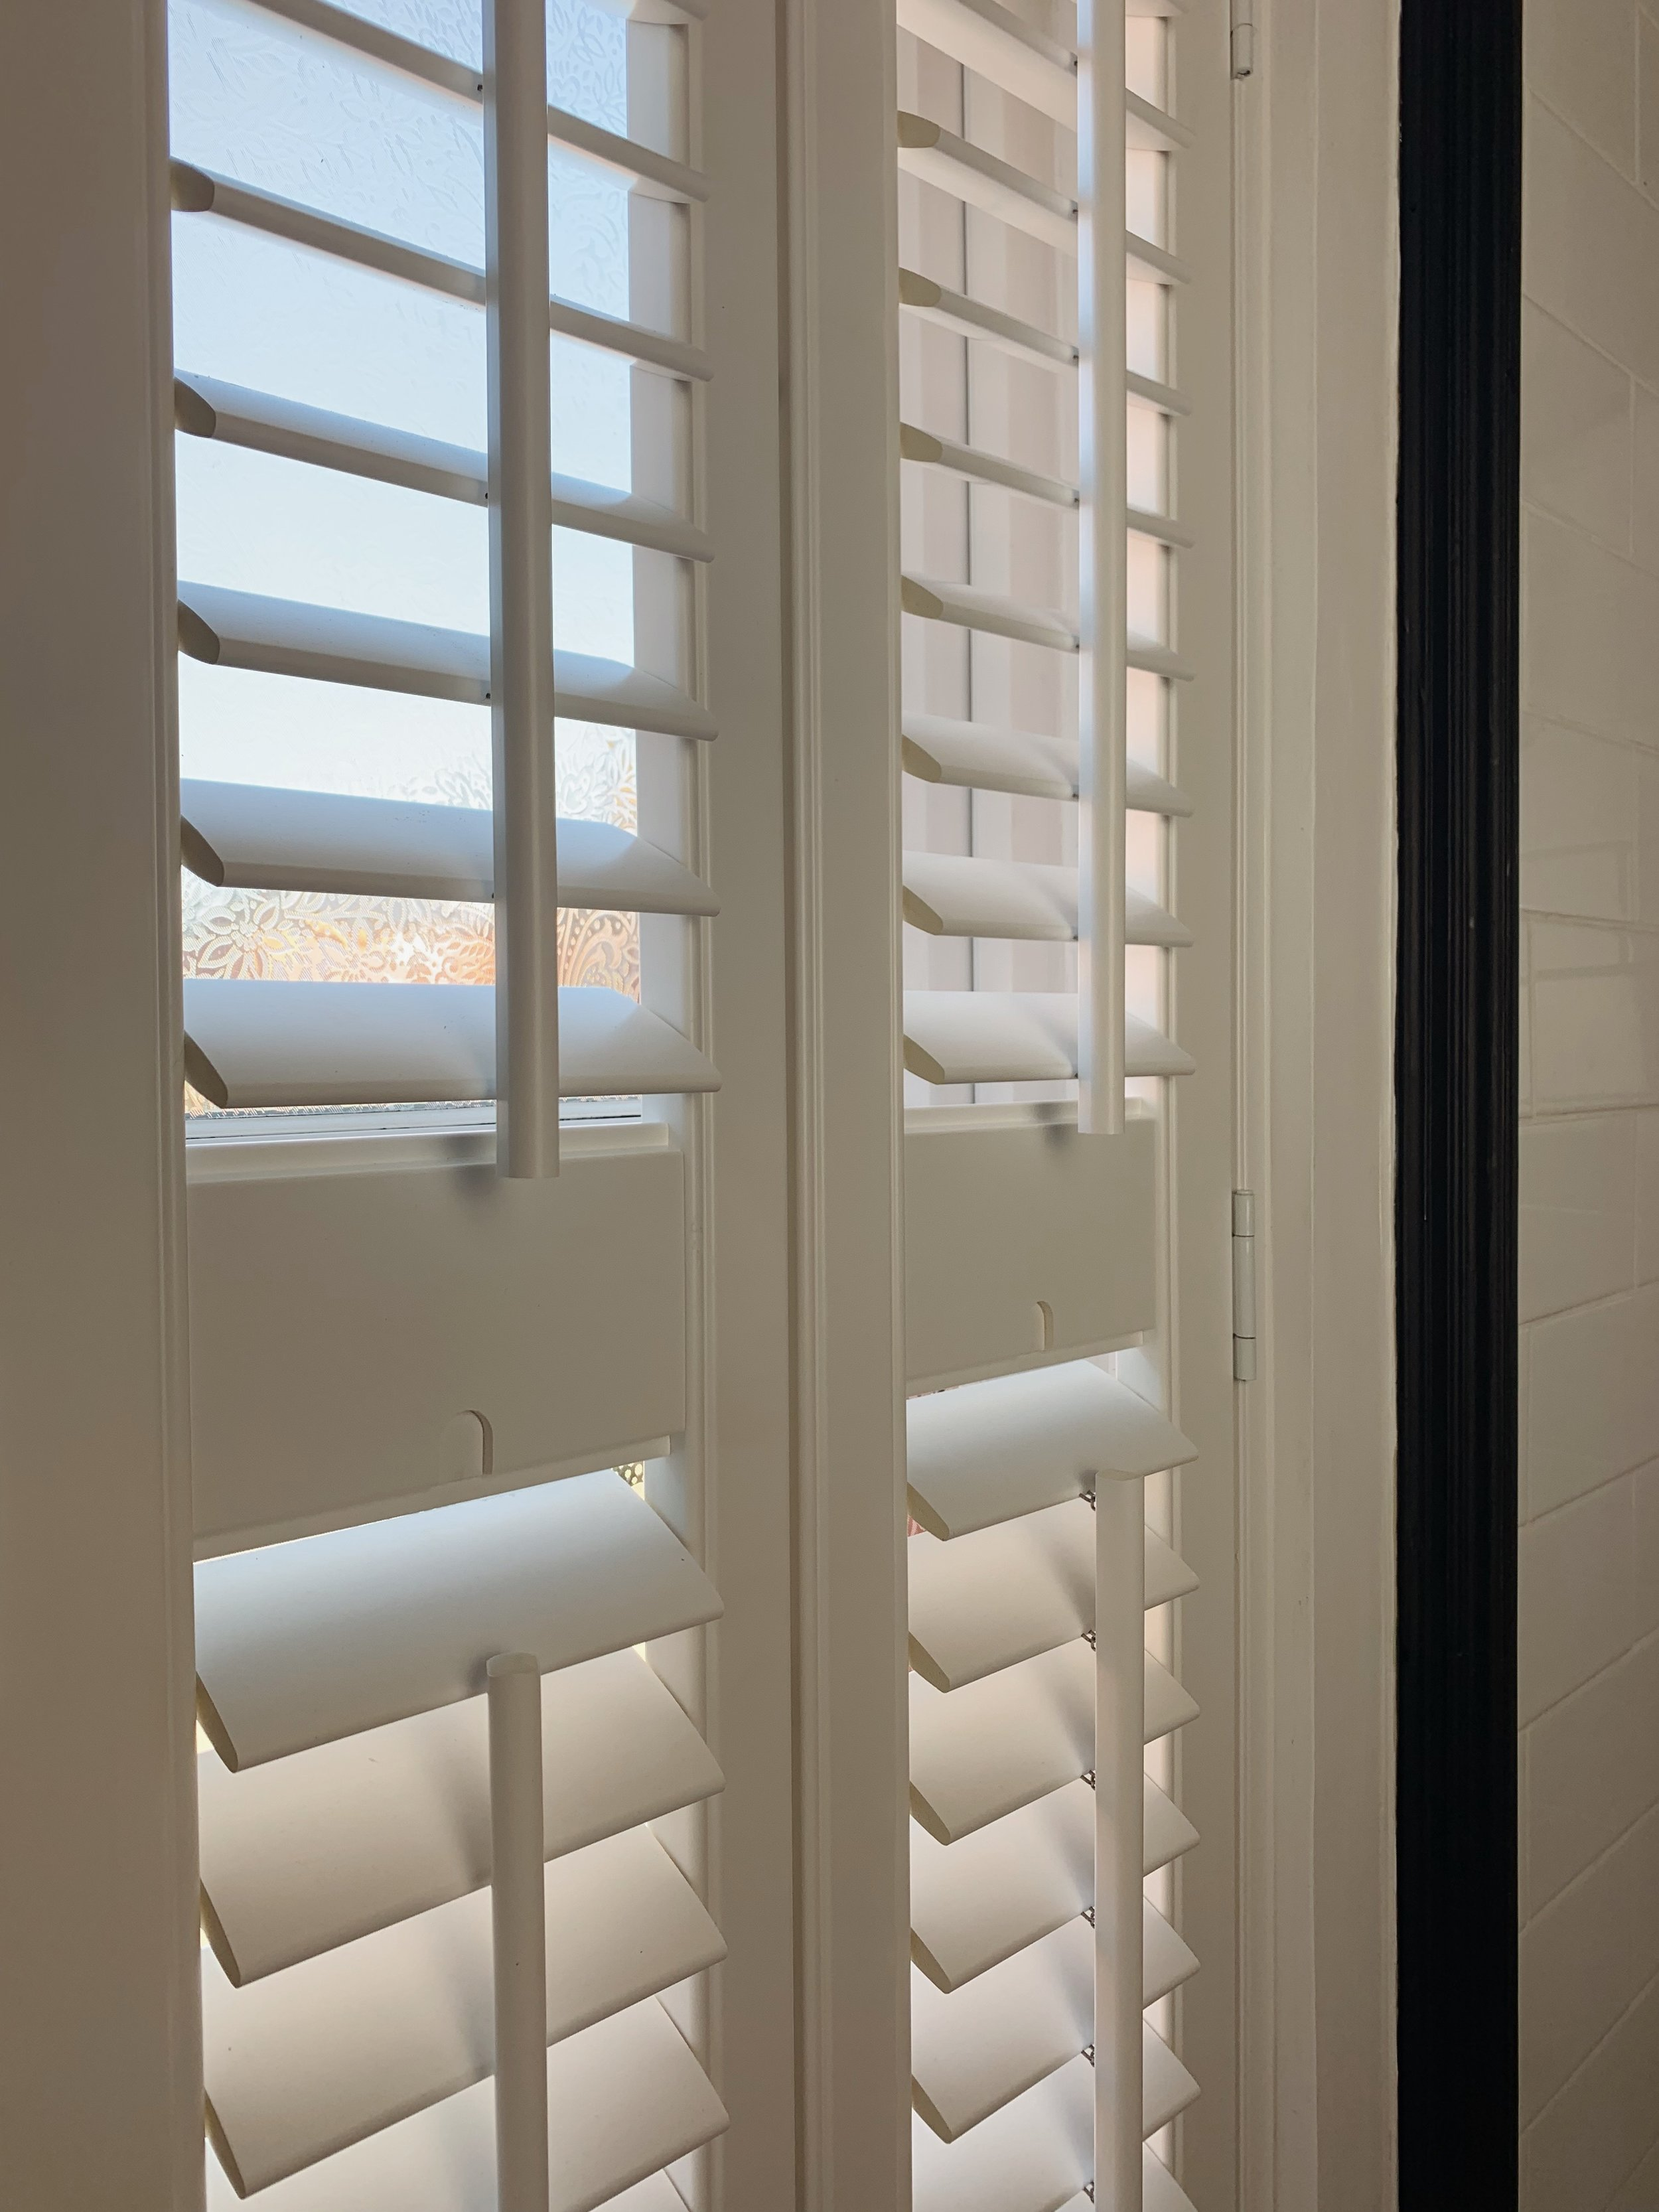 Our fully installed bathroom shutters from 247 Blinds